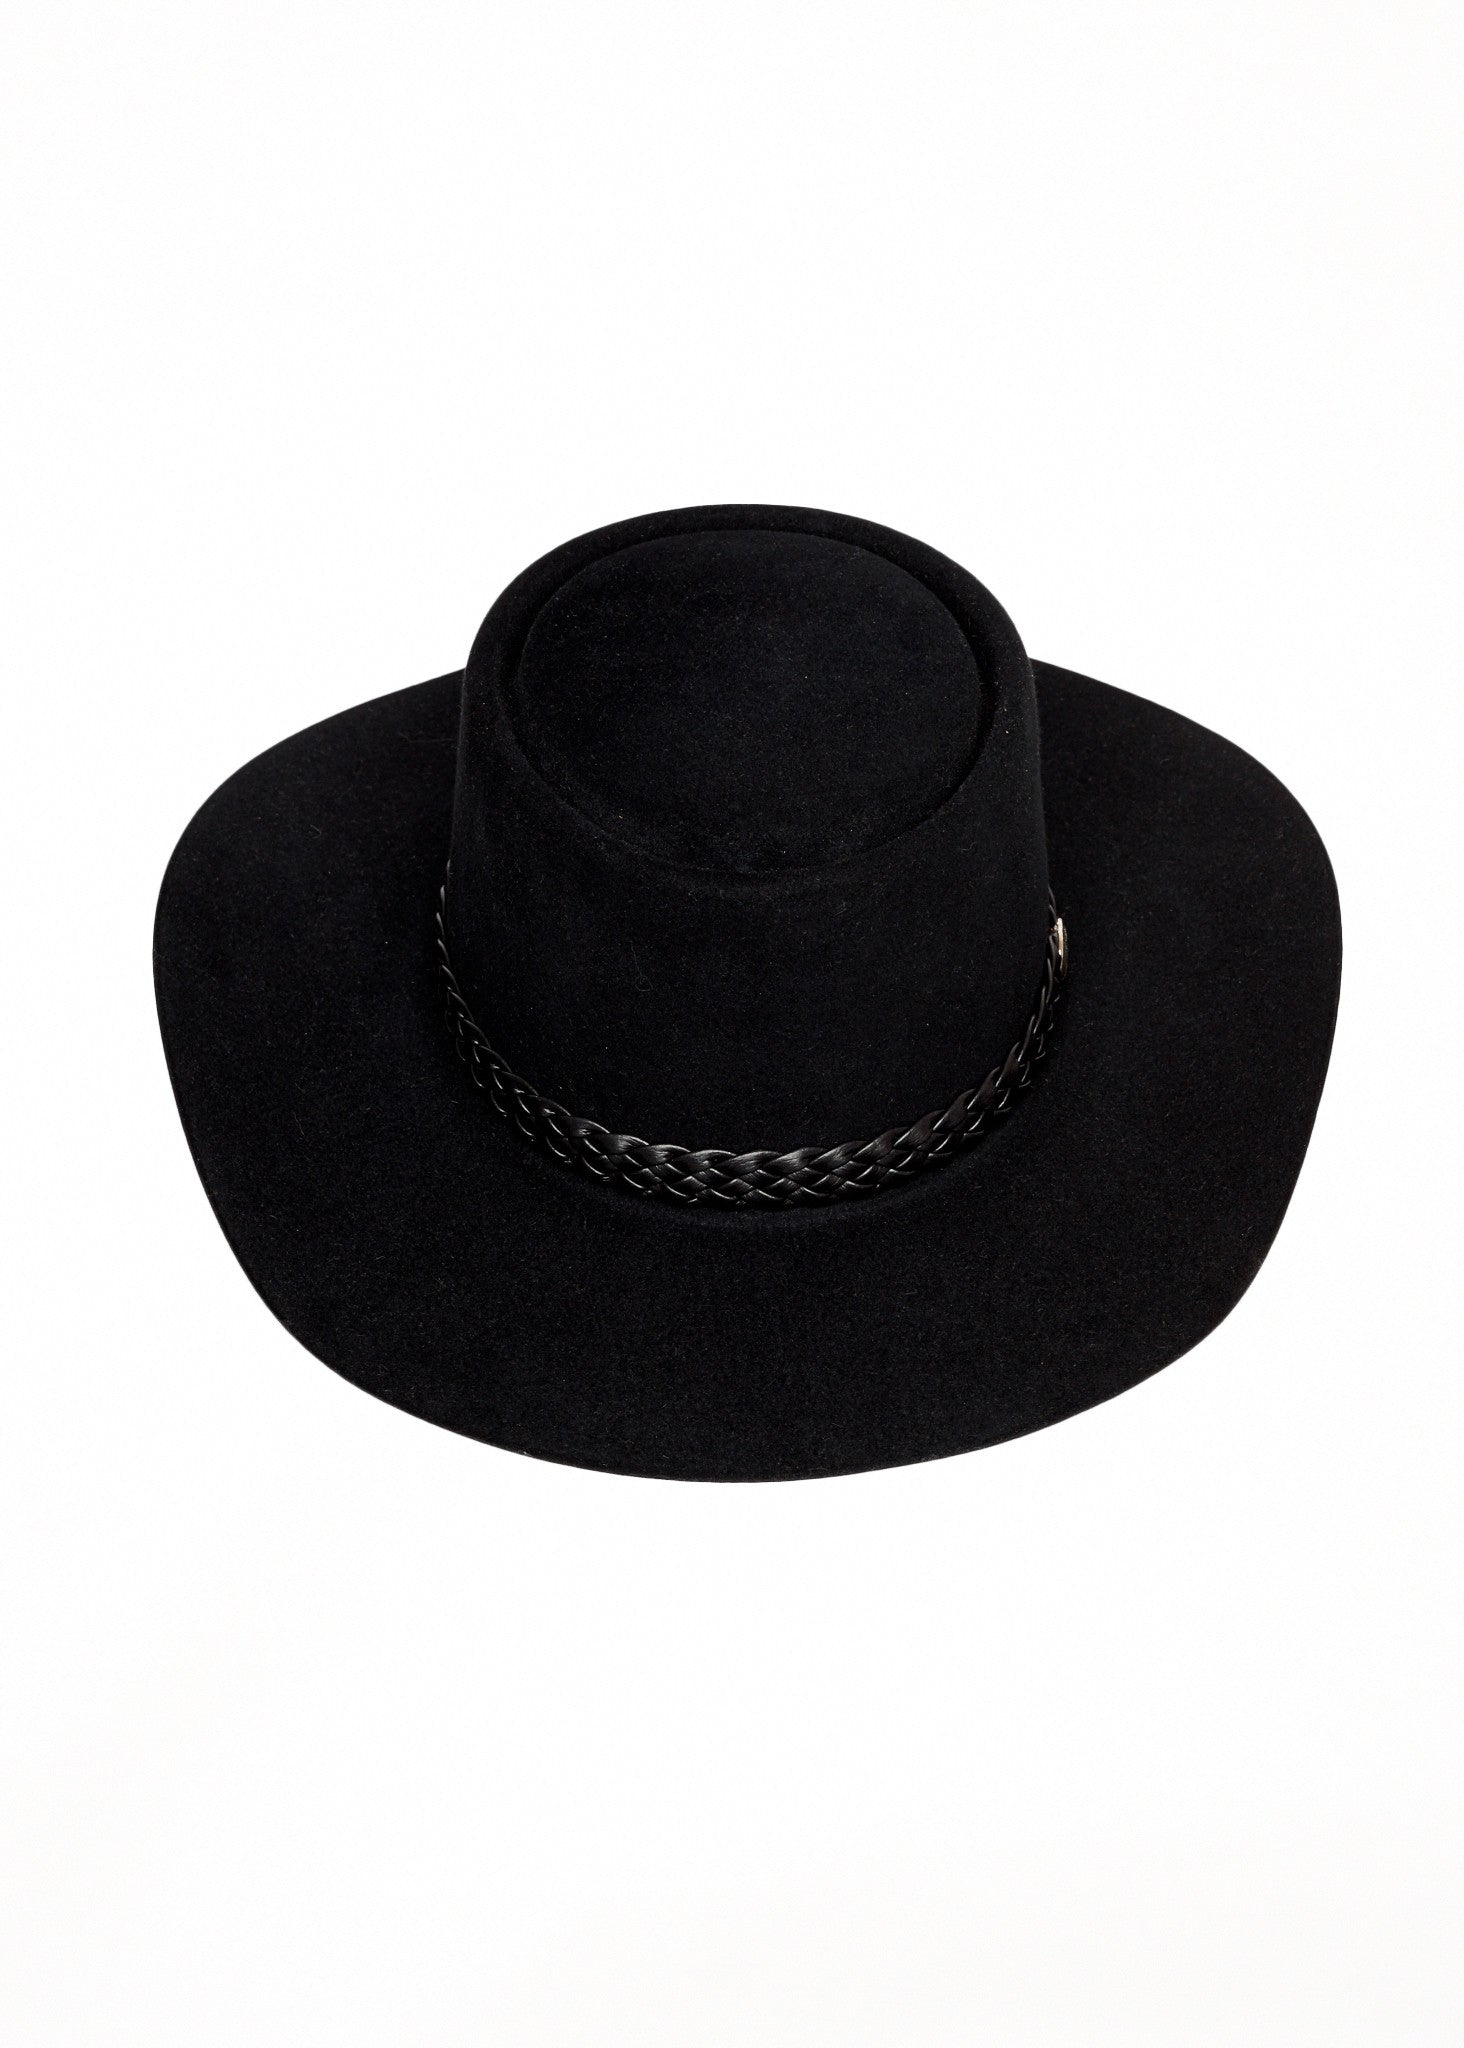 baa3fa8275516 The Lash Stetson Hat - Made Exclusively for Midnight Rider - Hat - Midnight  Rider